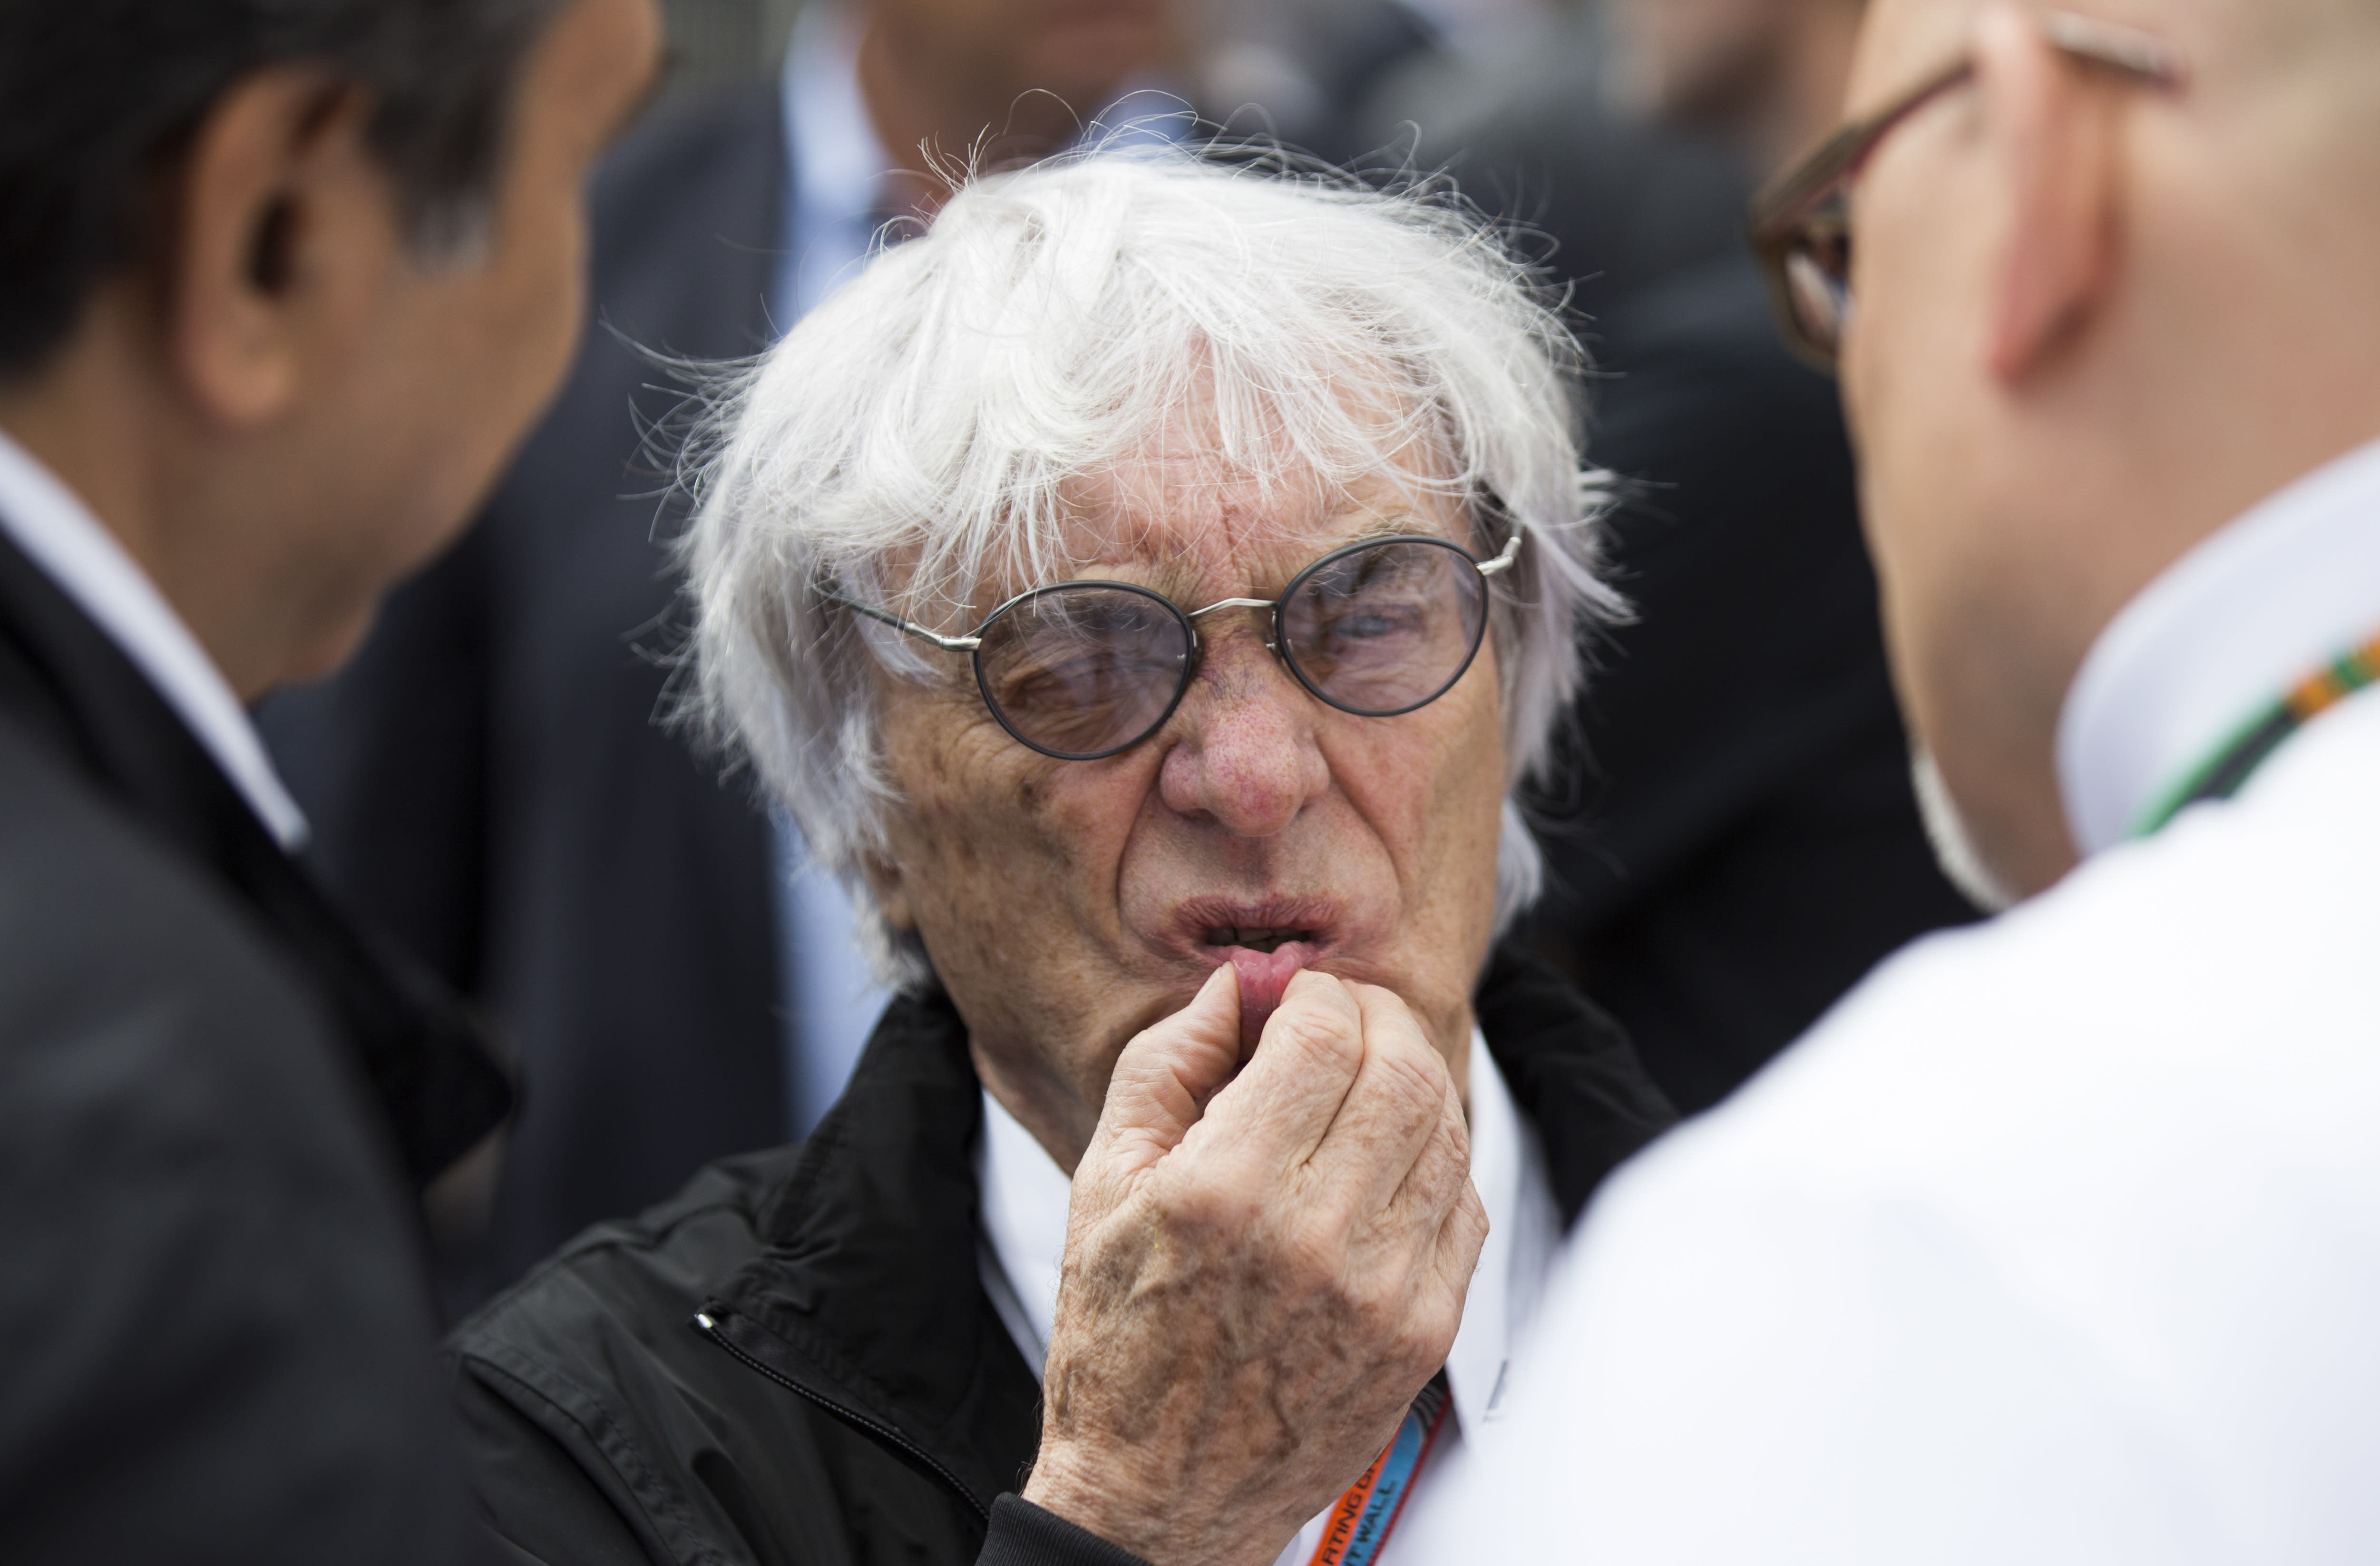 Ecclestone urges Rosberg and Vettel to promote F1 better